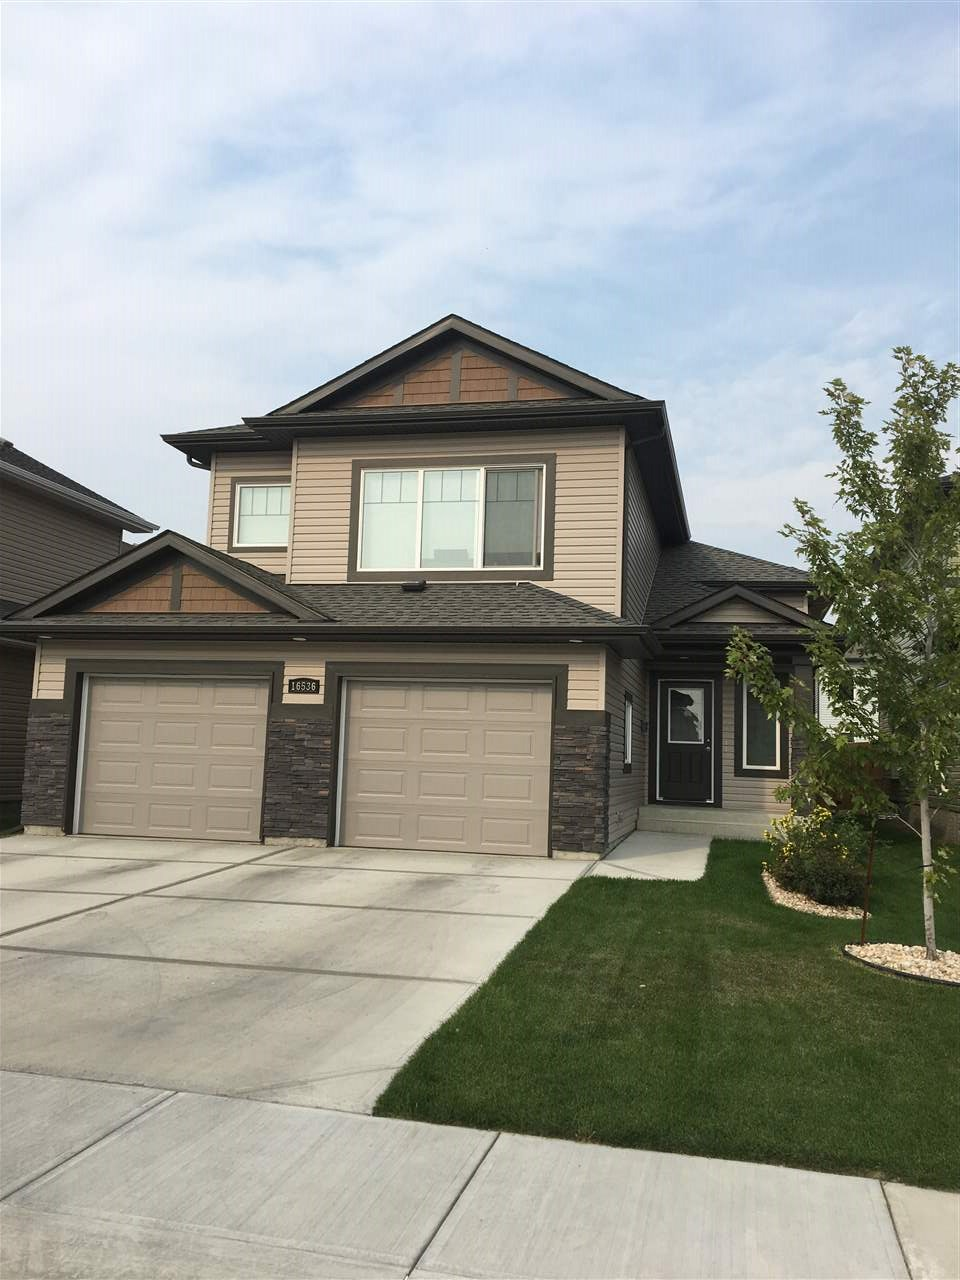 Main Photo: 16536 131 Street in Edmonton: Zone 27 House for sale : MLS® # E4078881